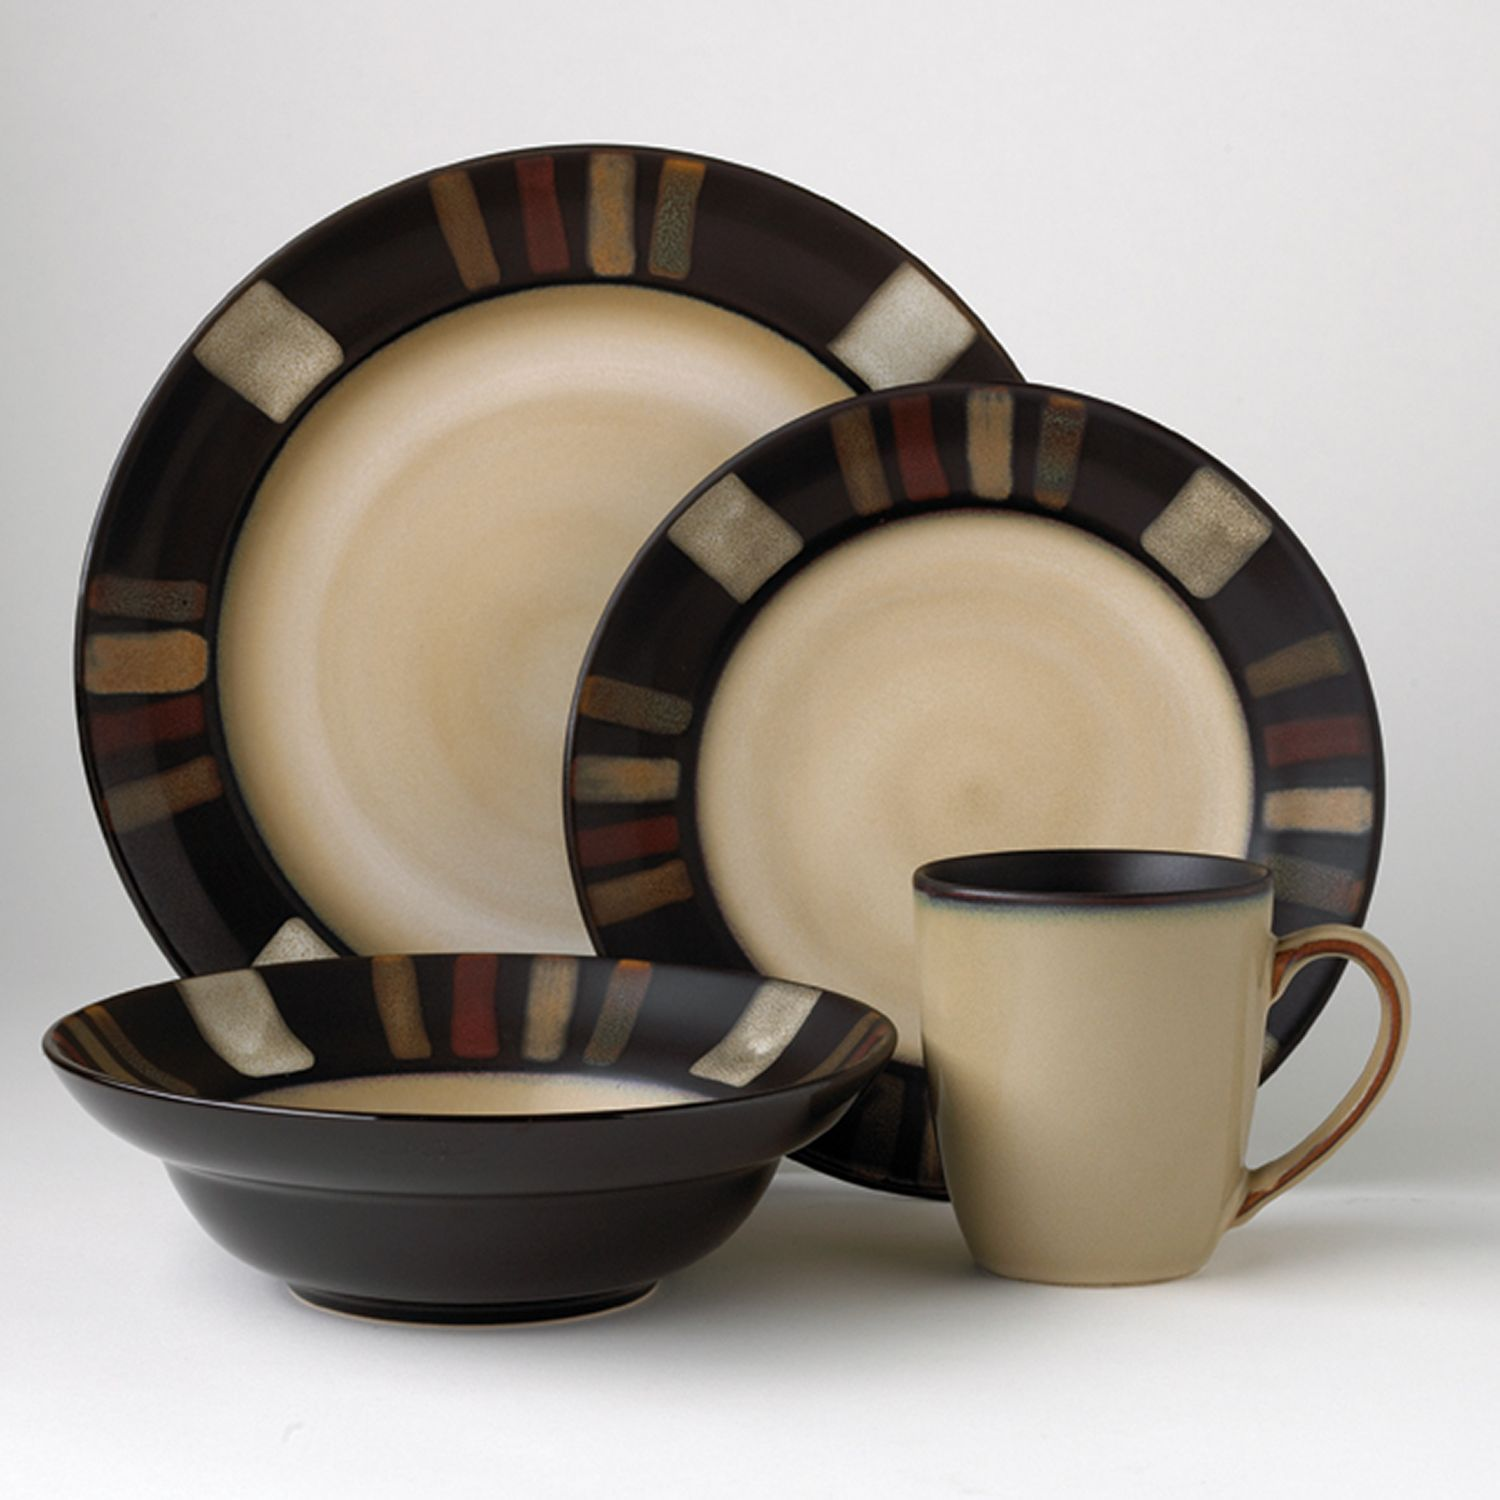 Pfaltzgraff Everyday Tahoe 16-pc. Dinnerware Set & Everyday Tahoe 16-pc. Dinnerware Set